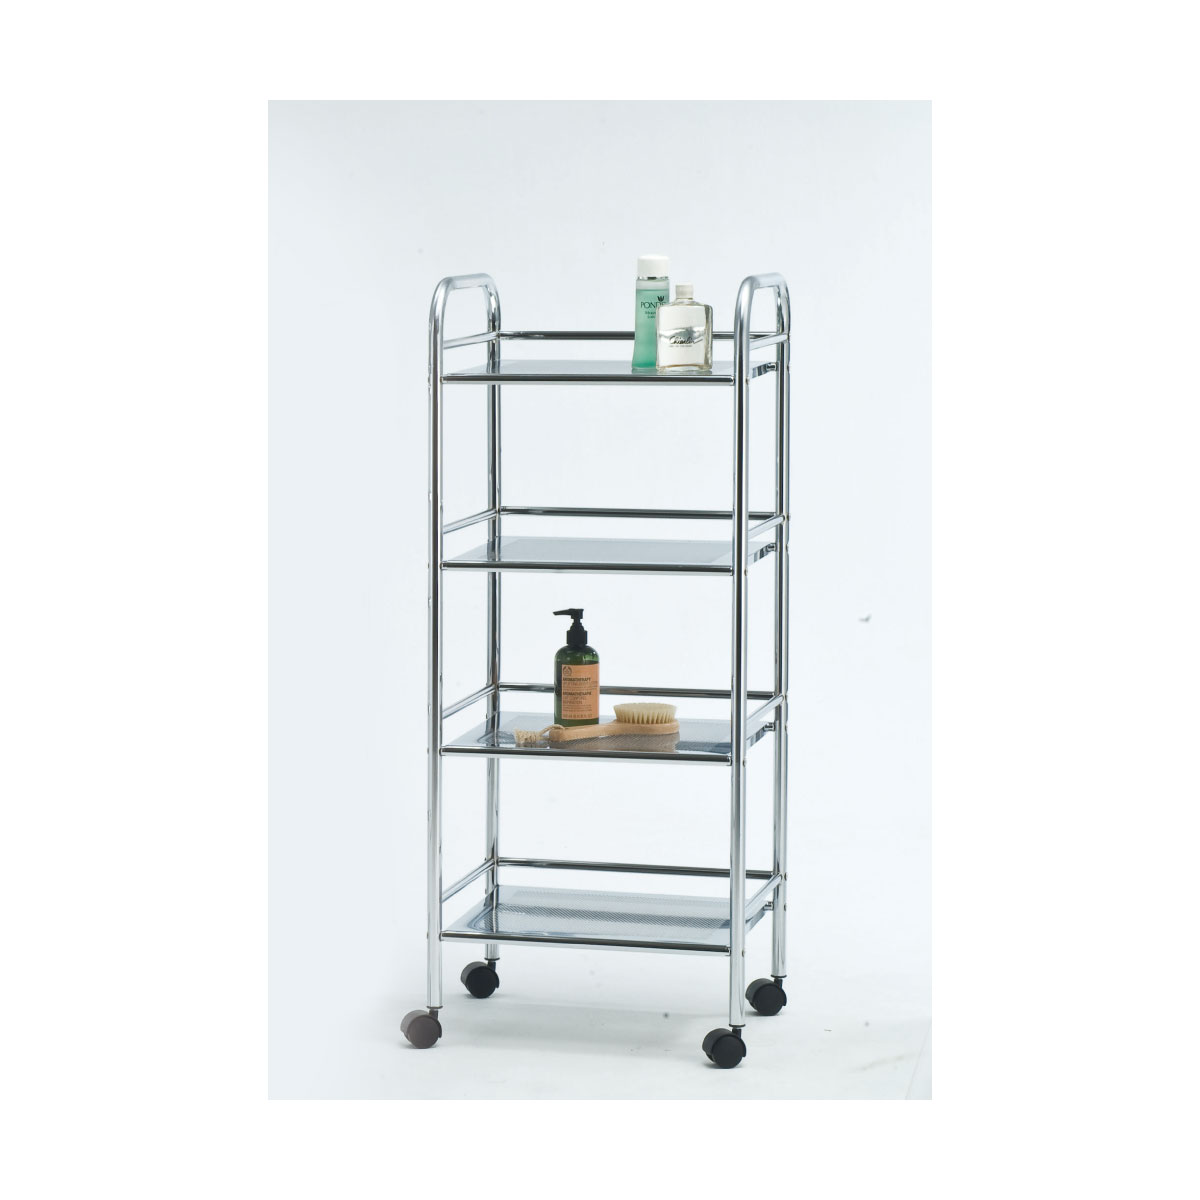 Four-tier Bathroom Storage (YL-B011)